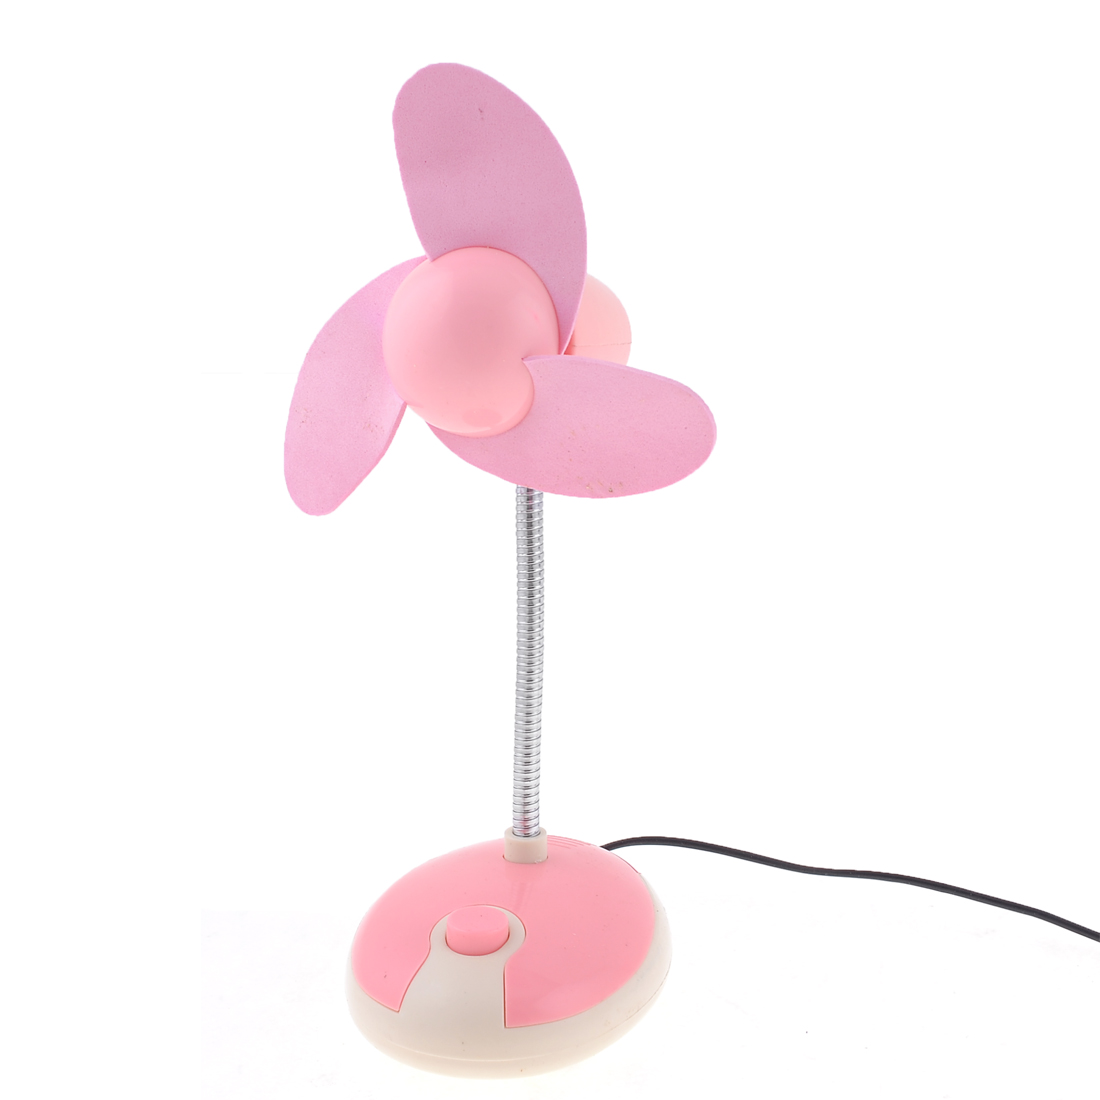 Metal Flexible Neck 3 Foam Flabellums Desktop USB Desk Mini Fan Cooler Pink